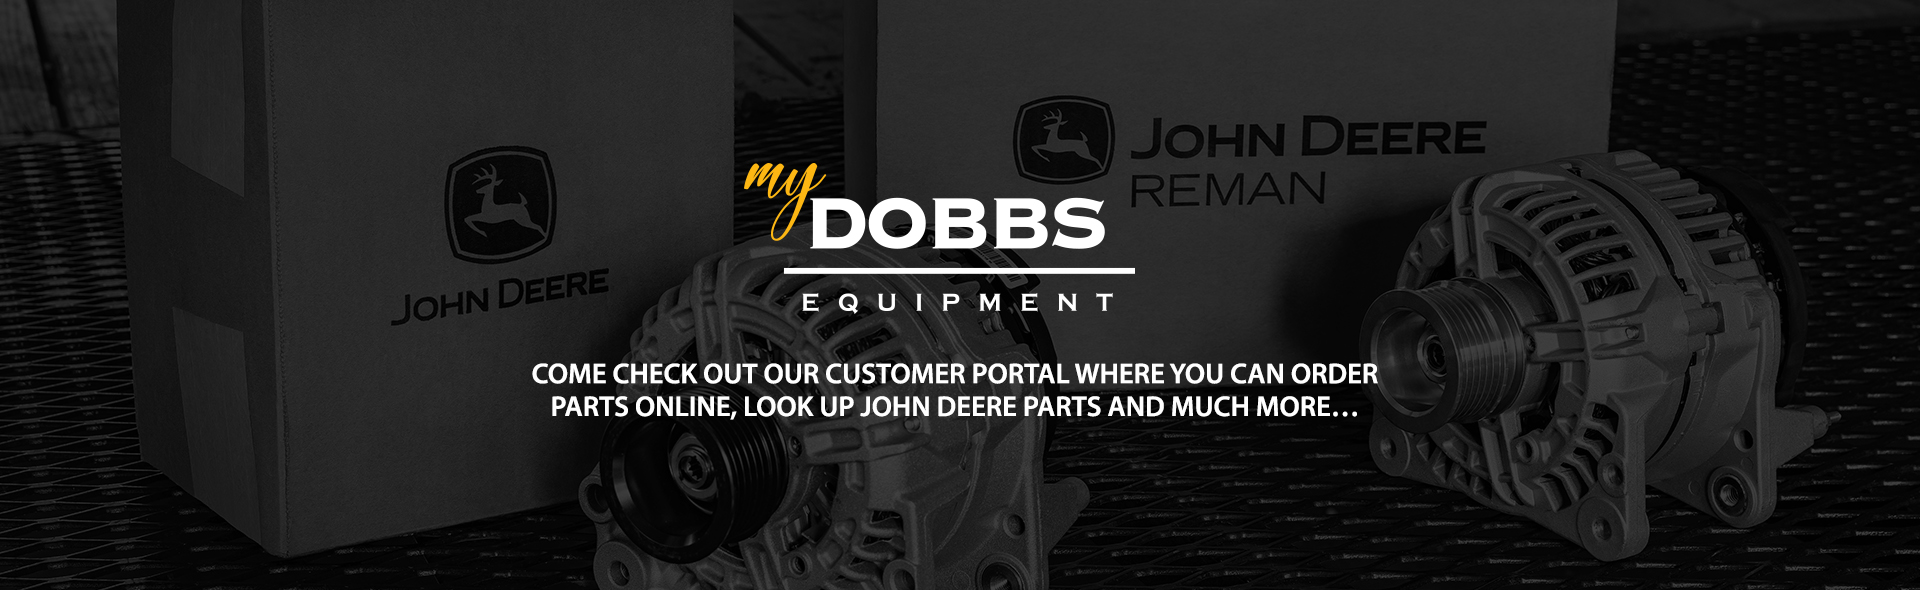 MyDobbs Equipment Banner